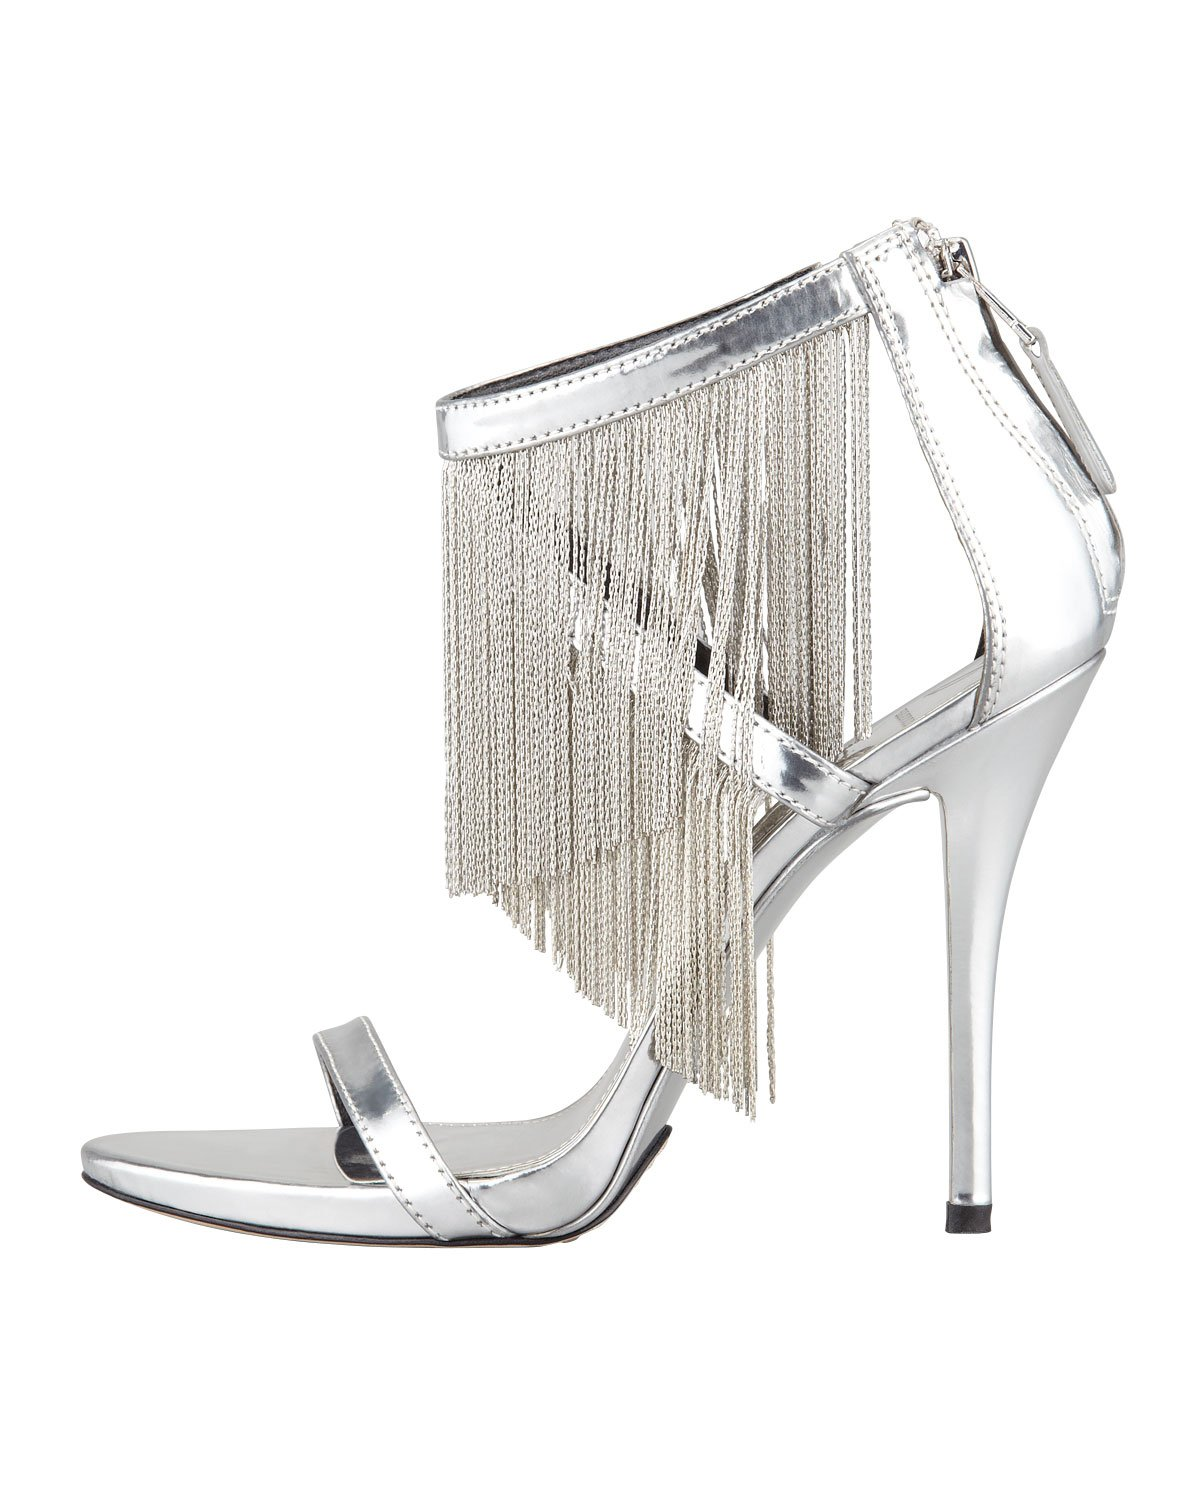 outlet pictures B Brian Atwood Embossed Fringe Sandals clearance online fake on hot sale 8Kc4M